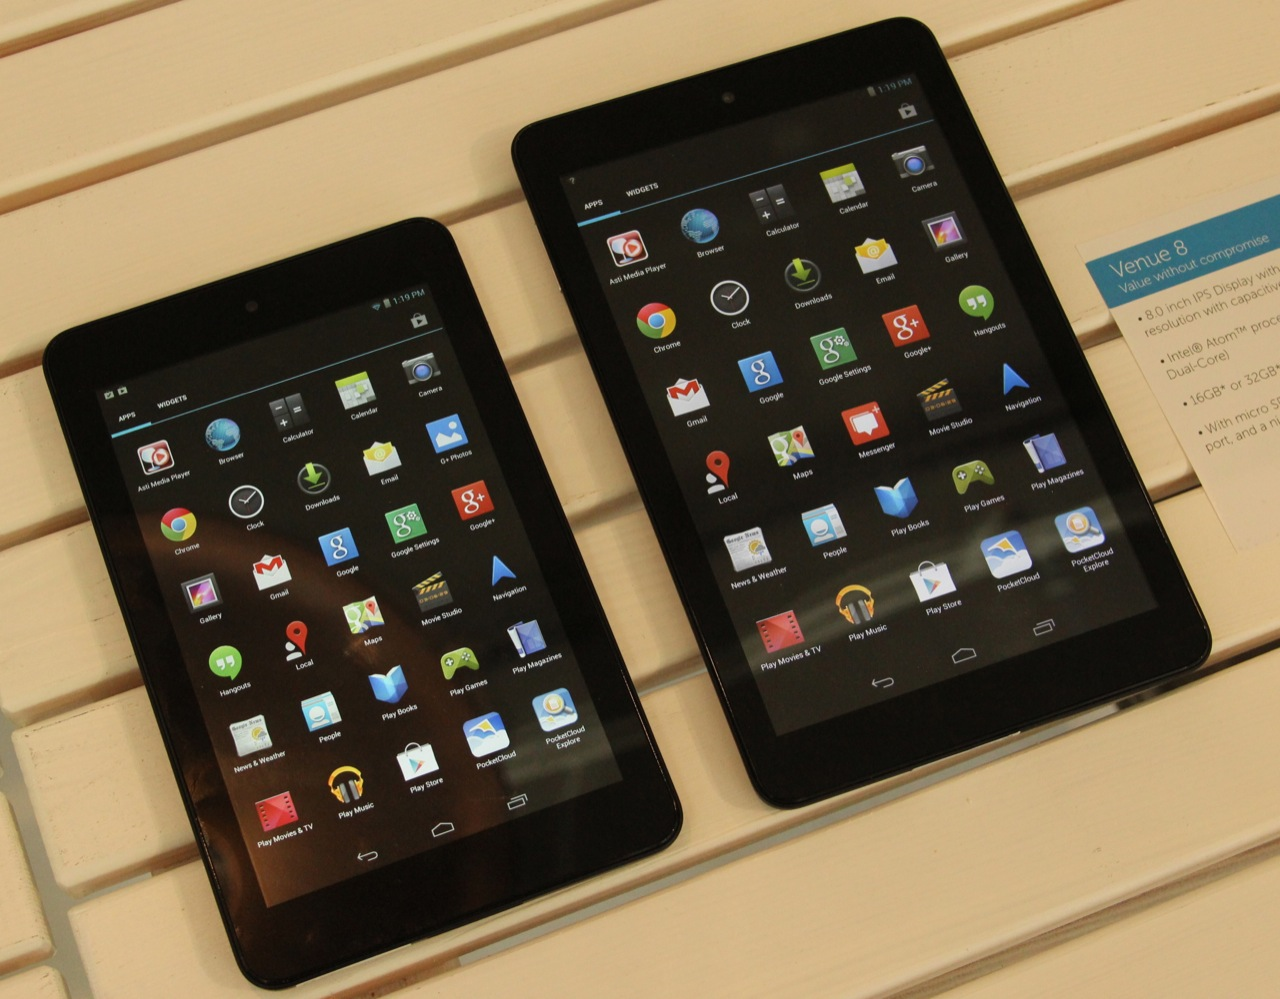 Hands-on: Dell ups its game with new Android and Windows 8 1 tablets